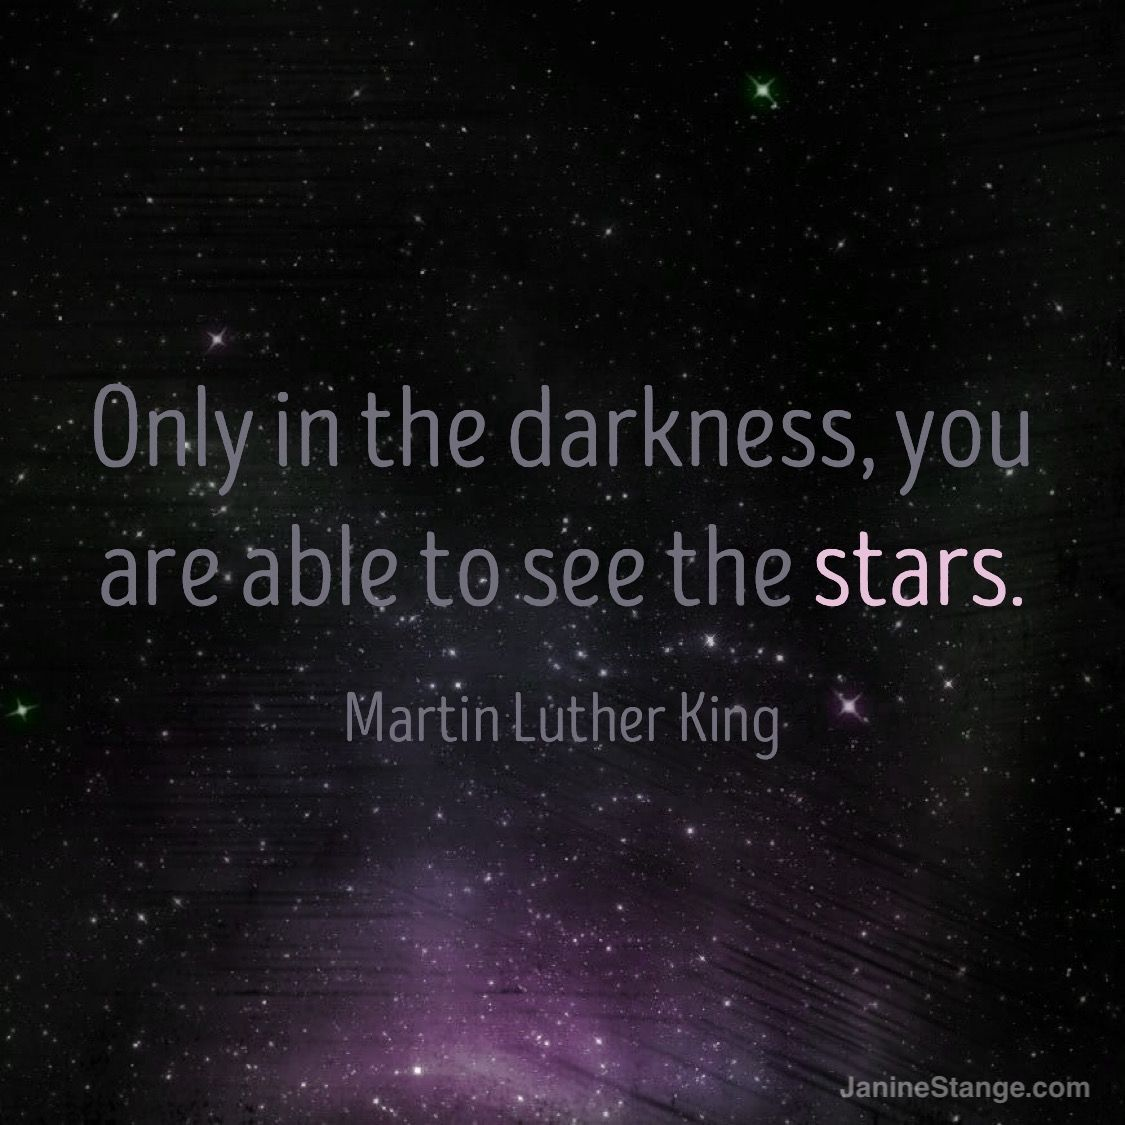 RT @THEANTHEMGIRL: Only in the darkness are you able to see the stars. – Martin Luther King Jr. https://t.co/q9T5AqM1uJ